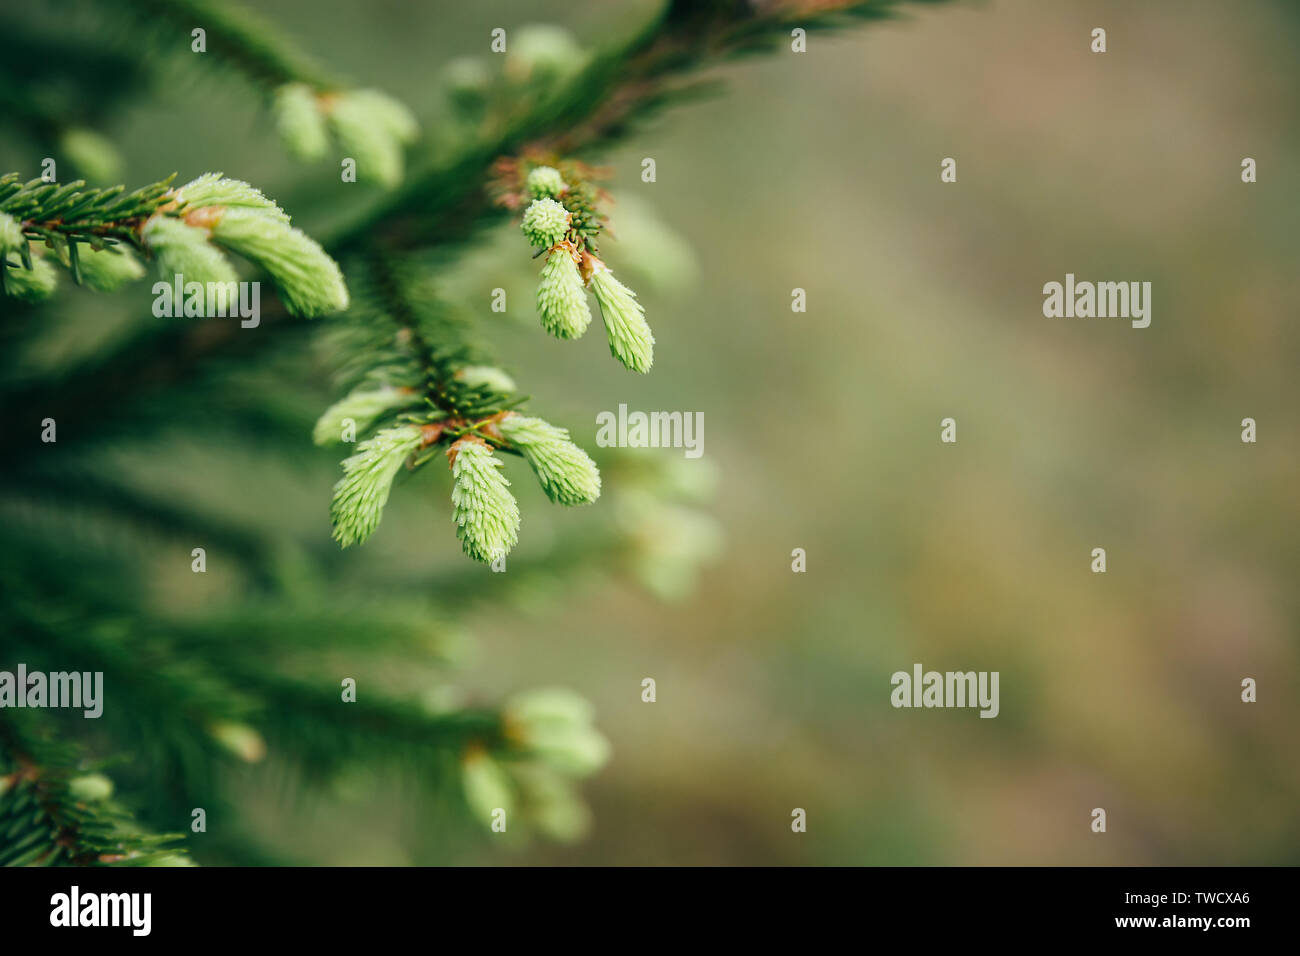 Young fir tree needles with water drops. Horizontal close up of morning dew on fir tree branches with forest in the background. Copy space. - Stock Image